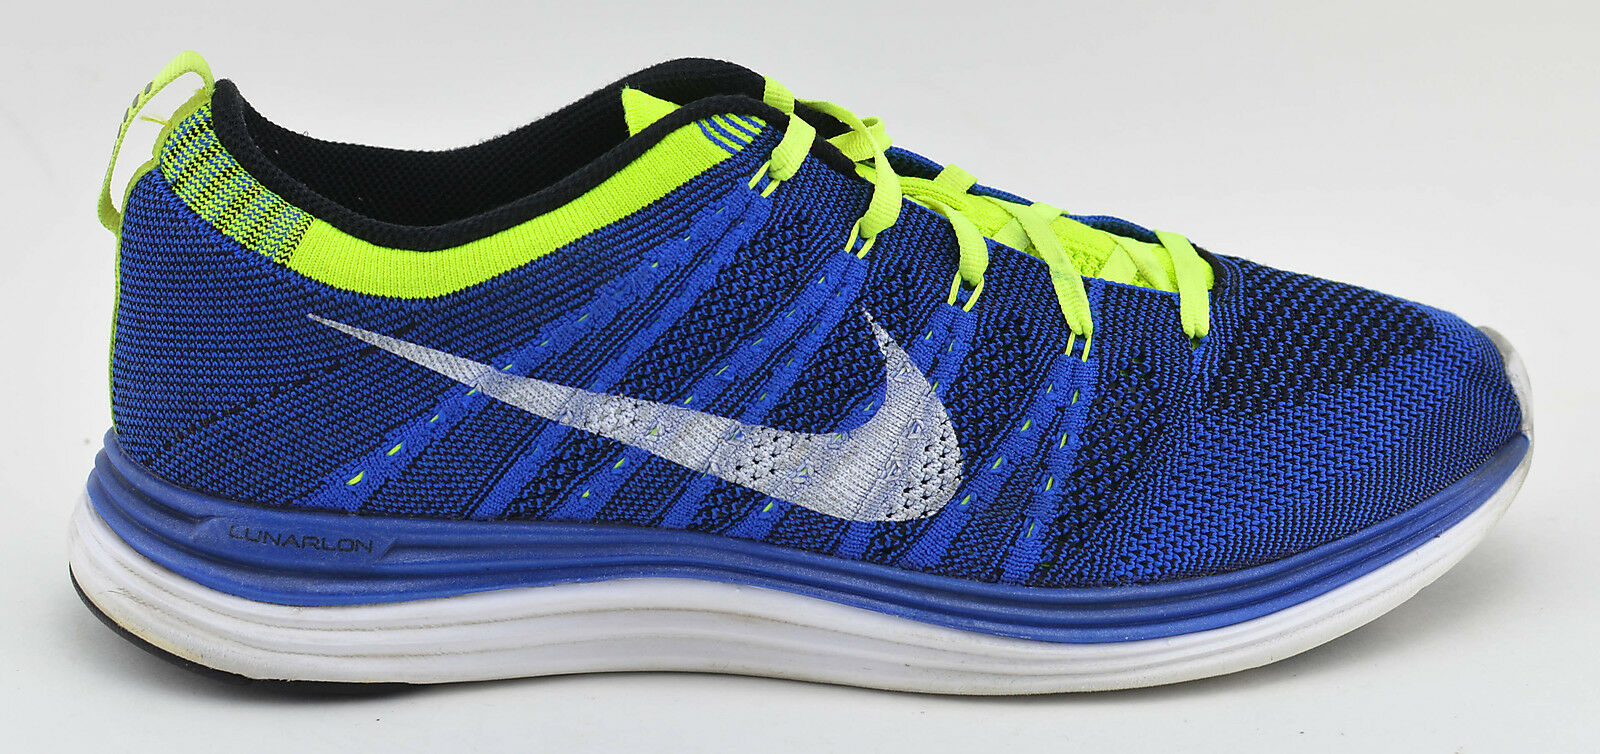 1e5043d26 NIKE LUNAR ONE RUNNING SHOES SIZE 10 blueE YELLOW WHITE 554887 410 FLYKNIT  MENS nqhuvn2523-Athletic Shoes